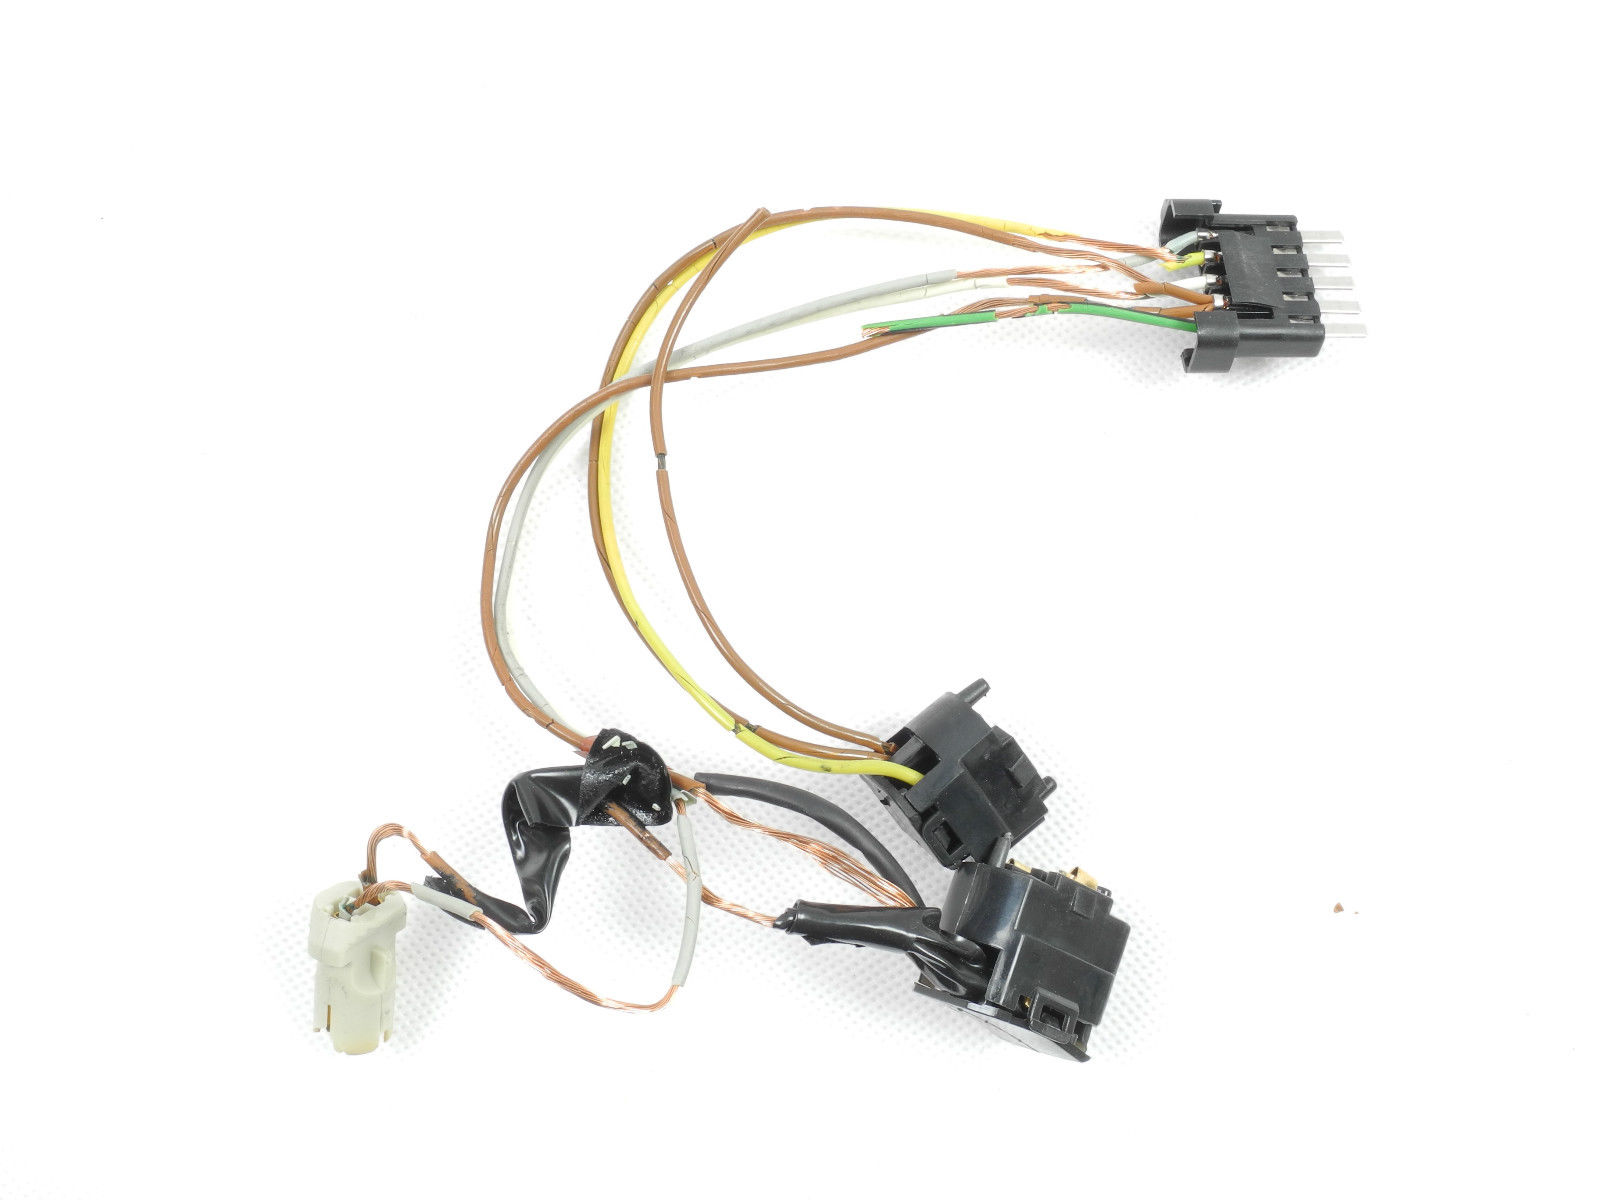 benz c32 engine wiring harness 992ce91 benz c32 engine wiring harness wiring resources  992ce91 benz c32 engine wiring harness